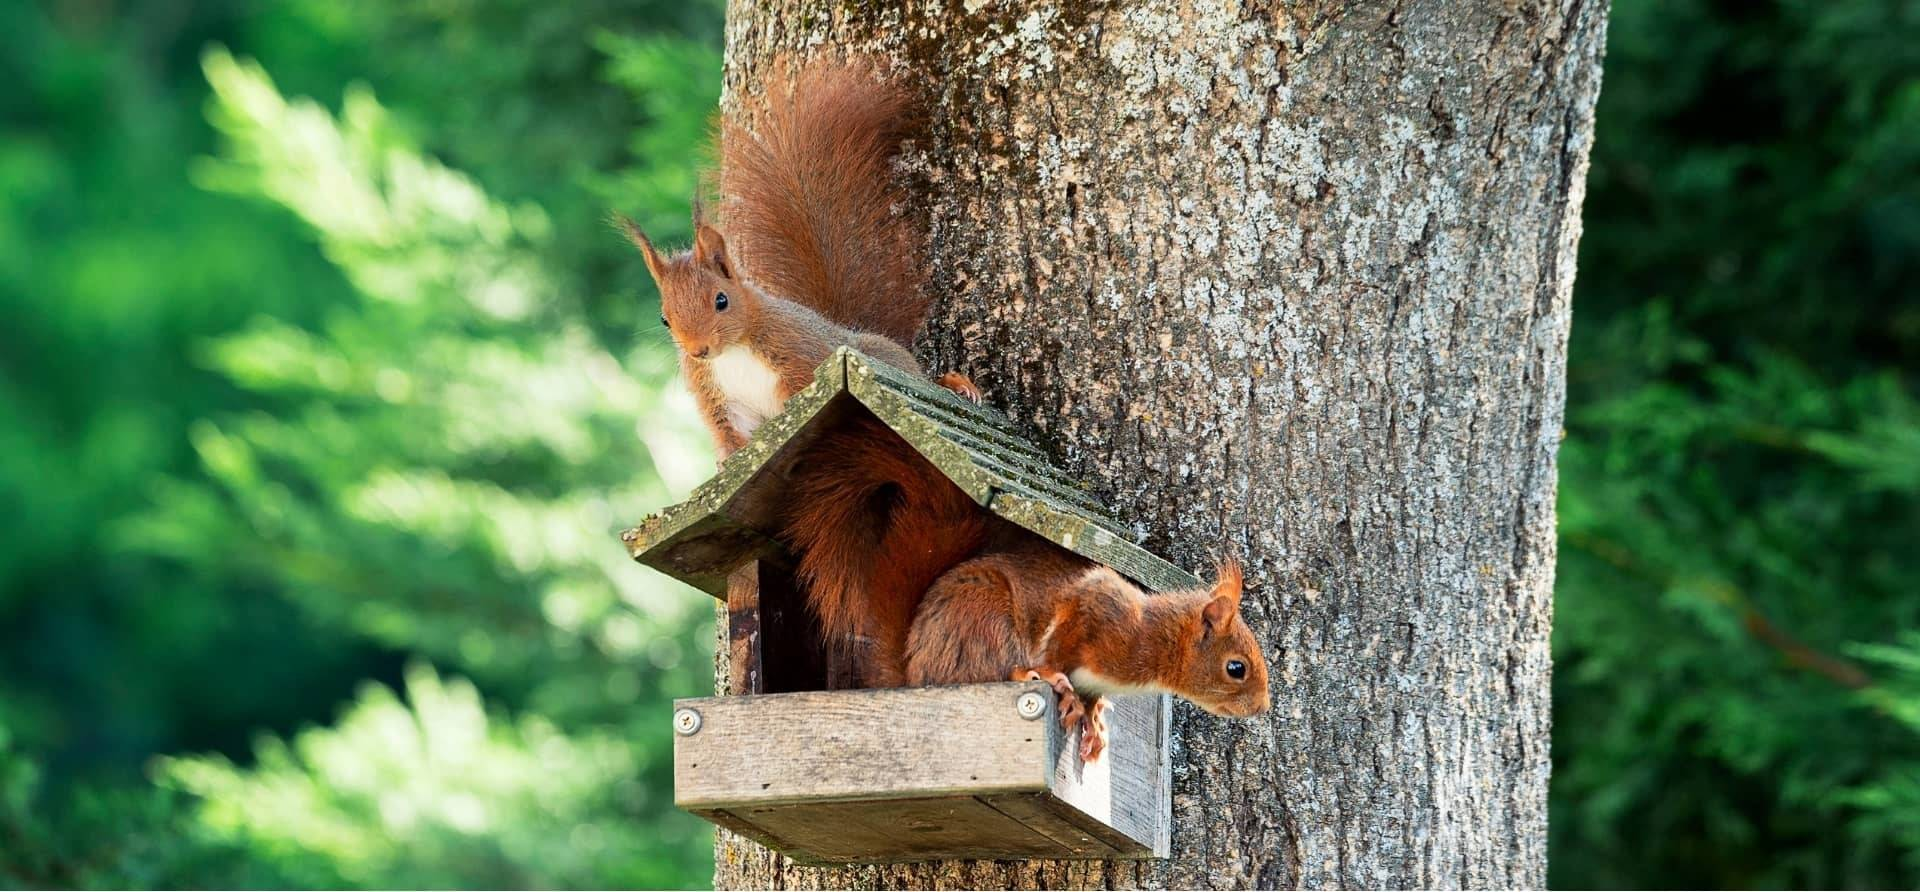 When Do Baby Squirrels Leave The Nest? [The Complete Process]